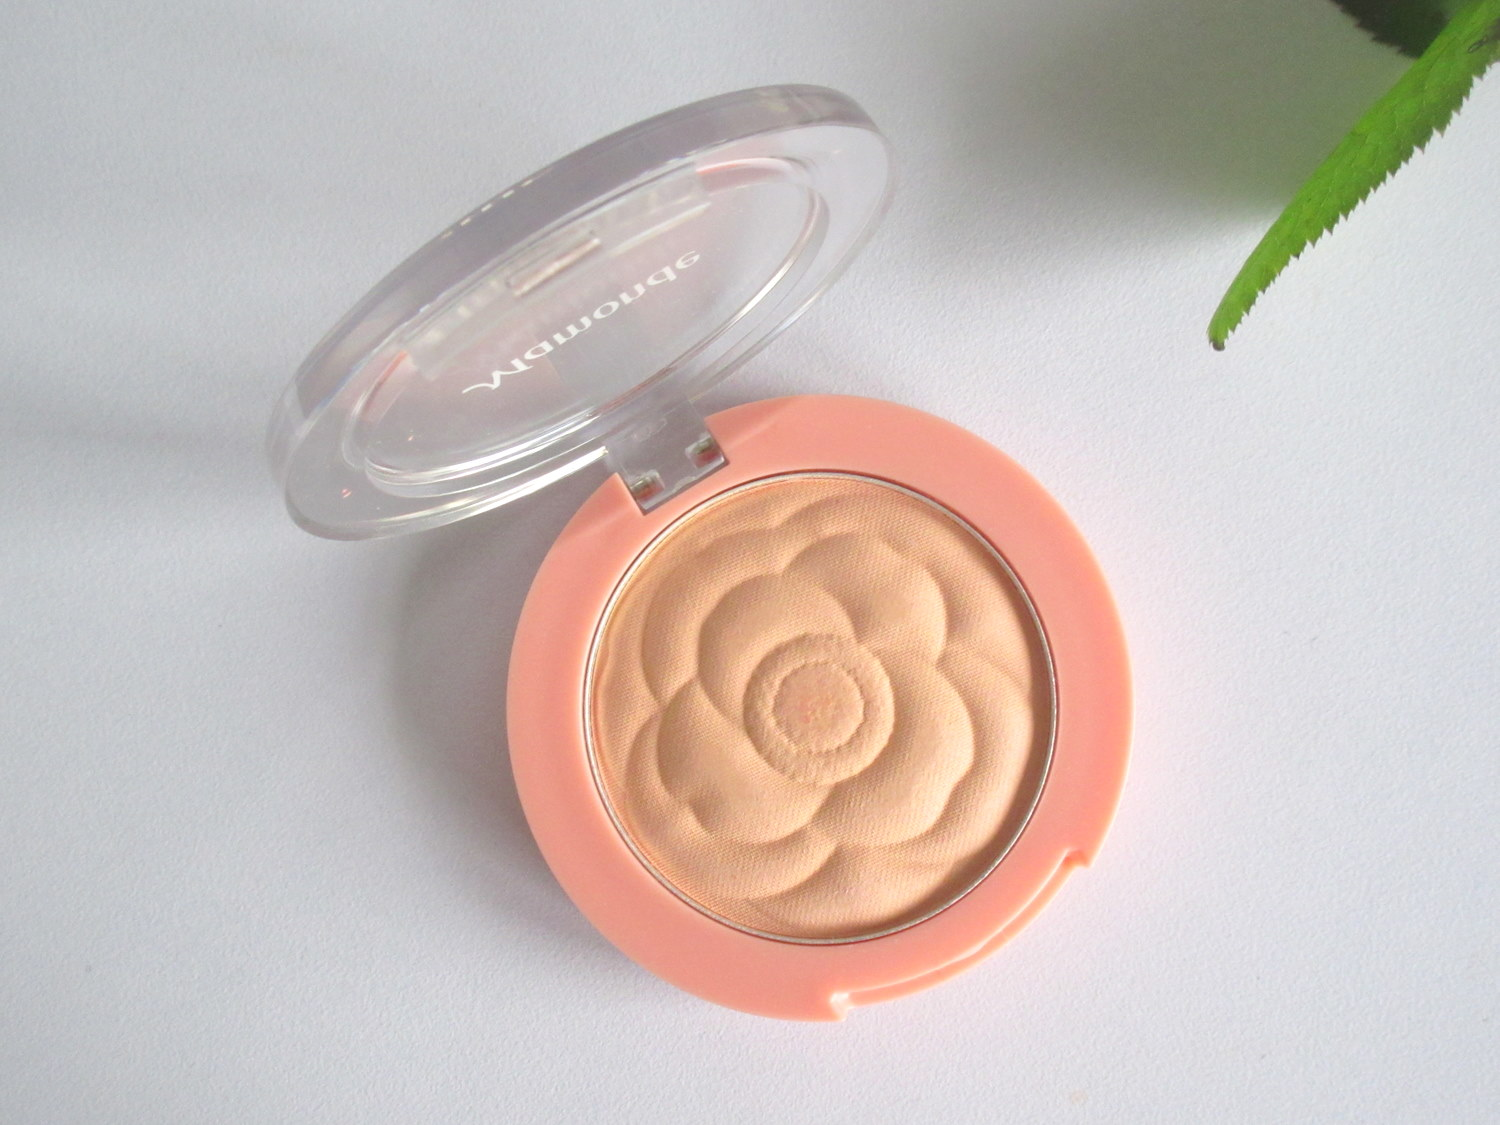 Mamonde Flower Pop Blusher in 04 Lily